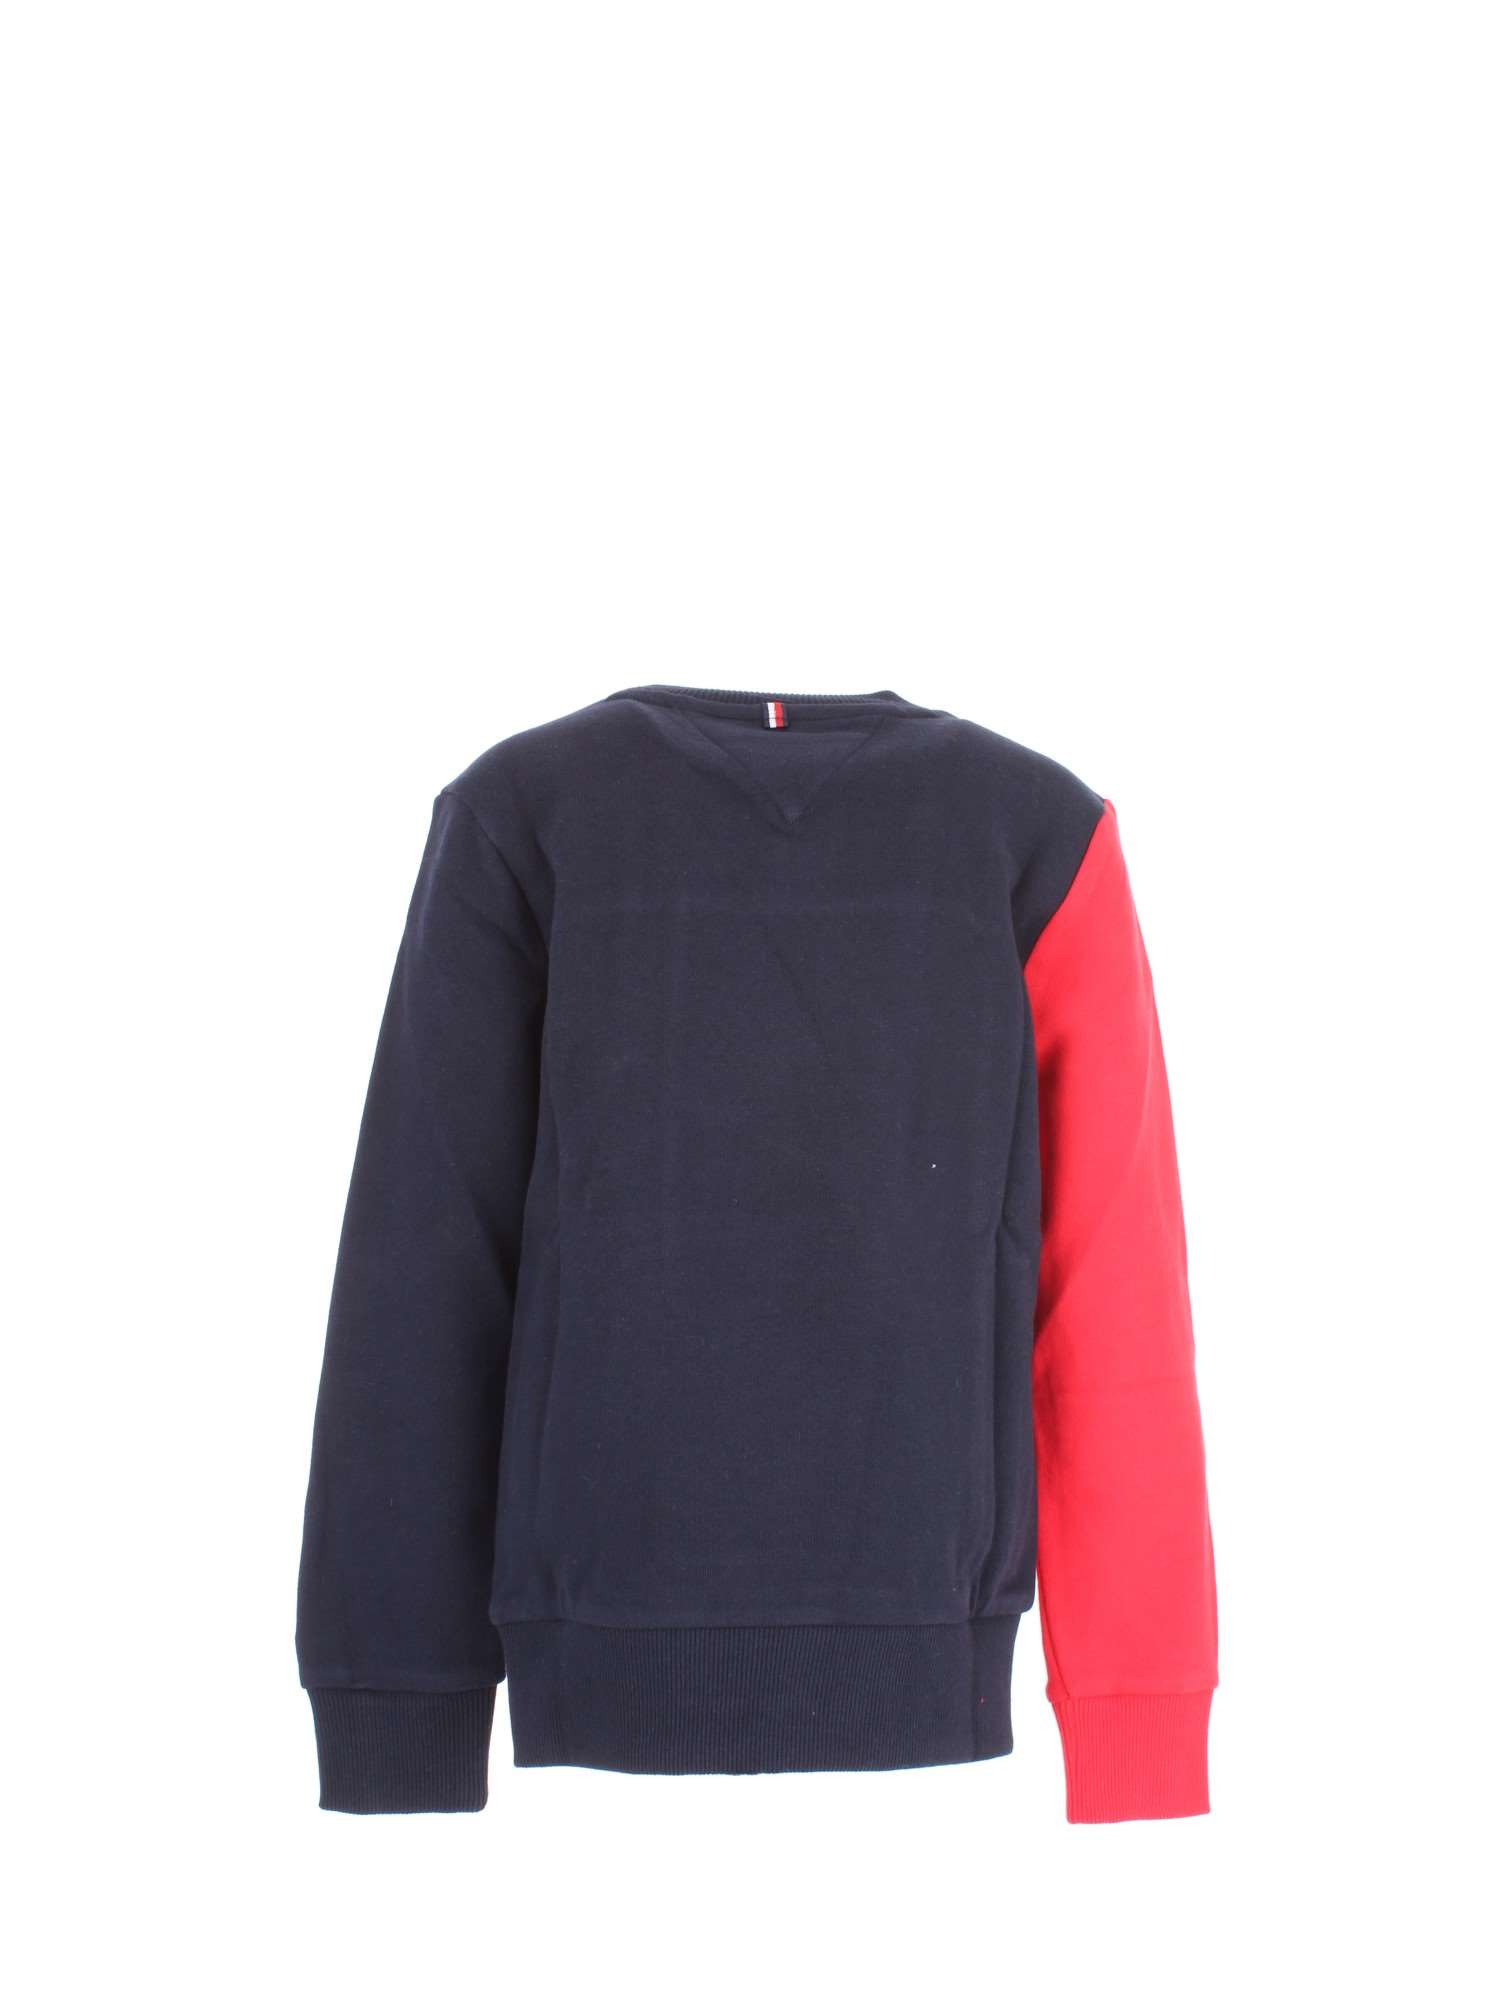 Détails sur TOMMY HILFIGER Enfant KB0KB04485 1 Multi 618 sweat shirt PrintempsÉté